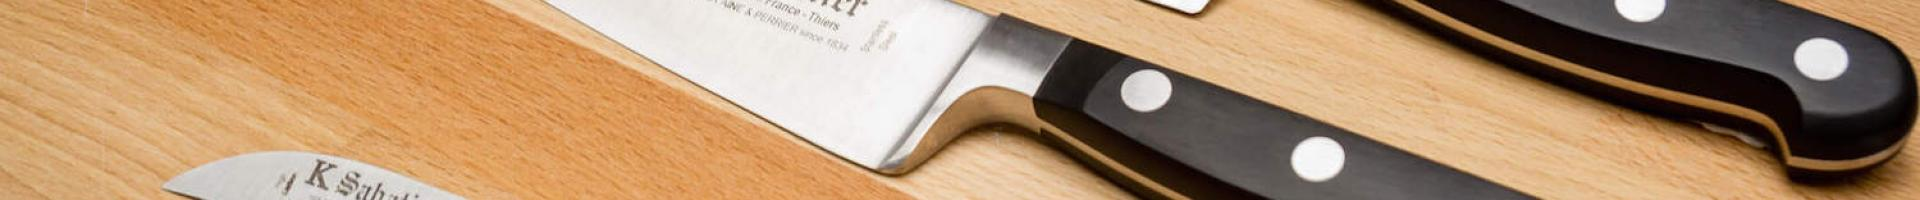 The essential knives for a chef